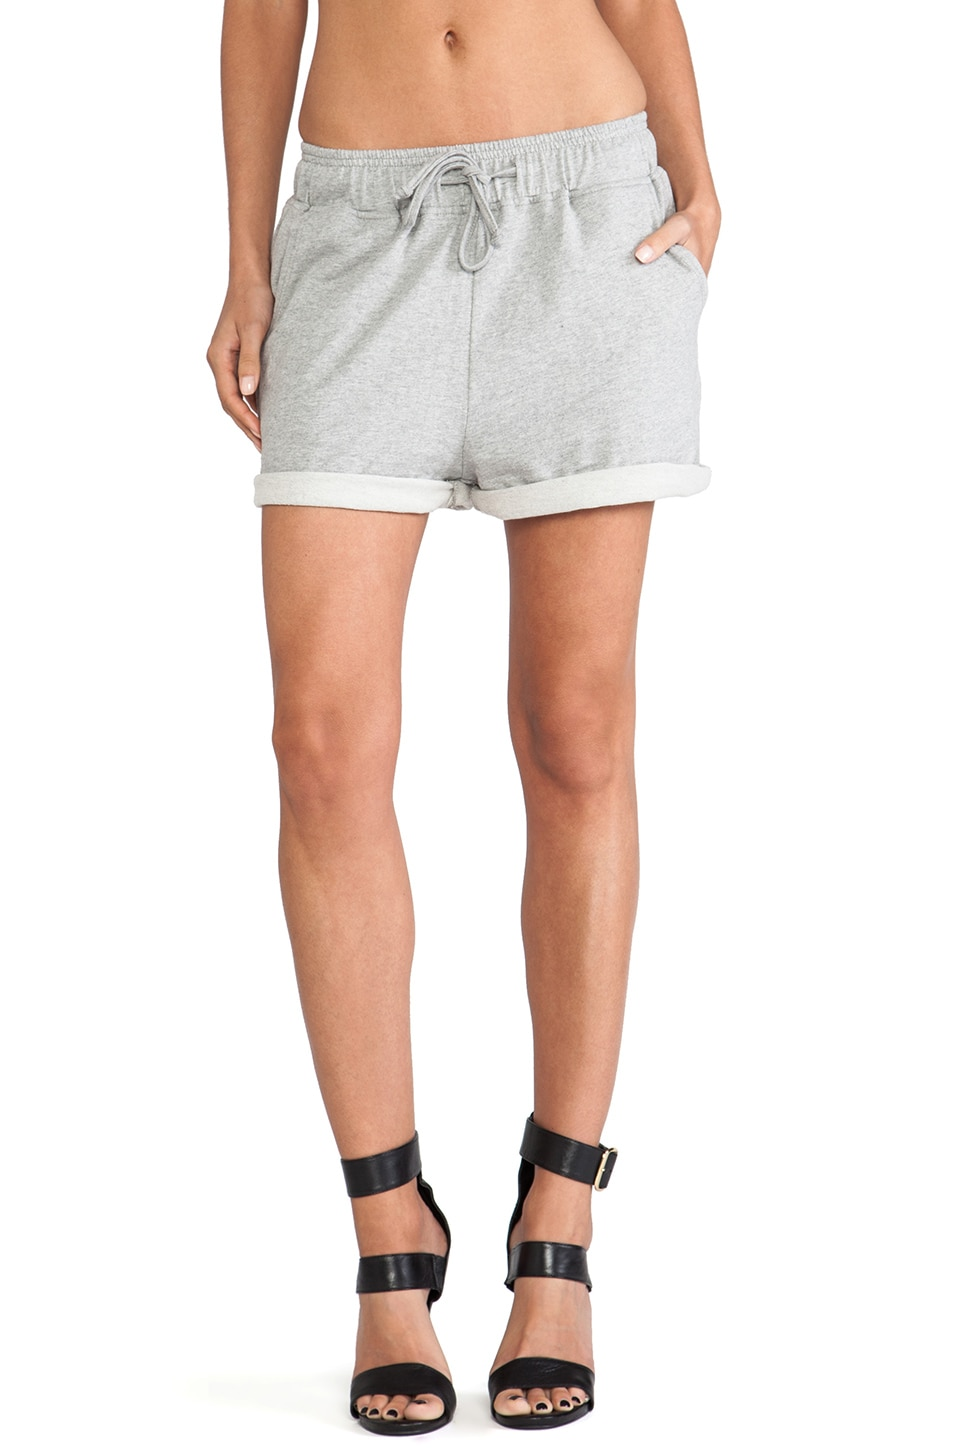 Elliott Label Gym Class Shorts in Marle Grey